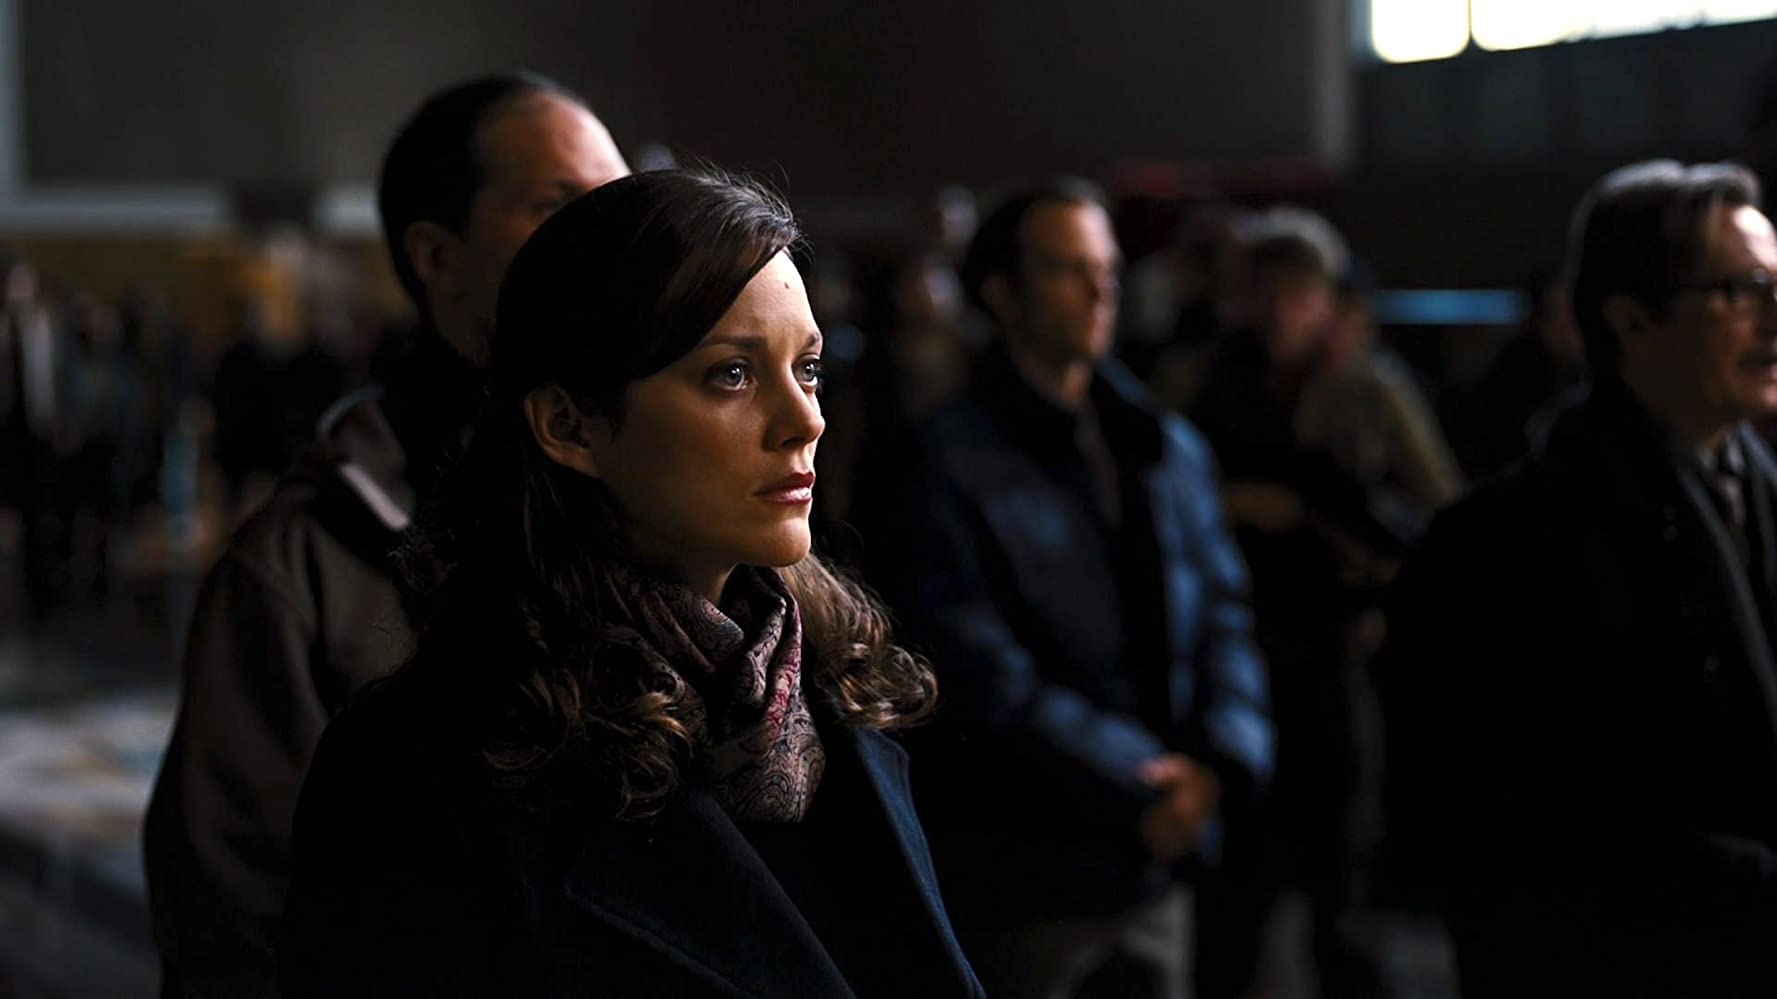 Marion Cotillard in The Dark Knight Rises (2012)